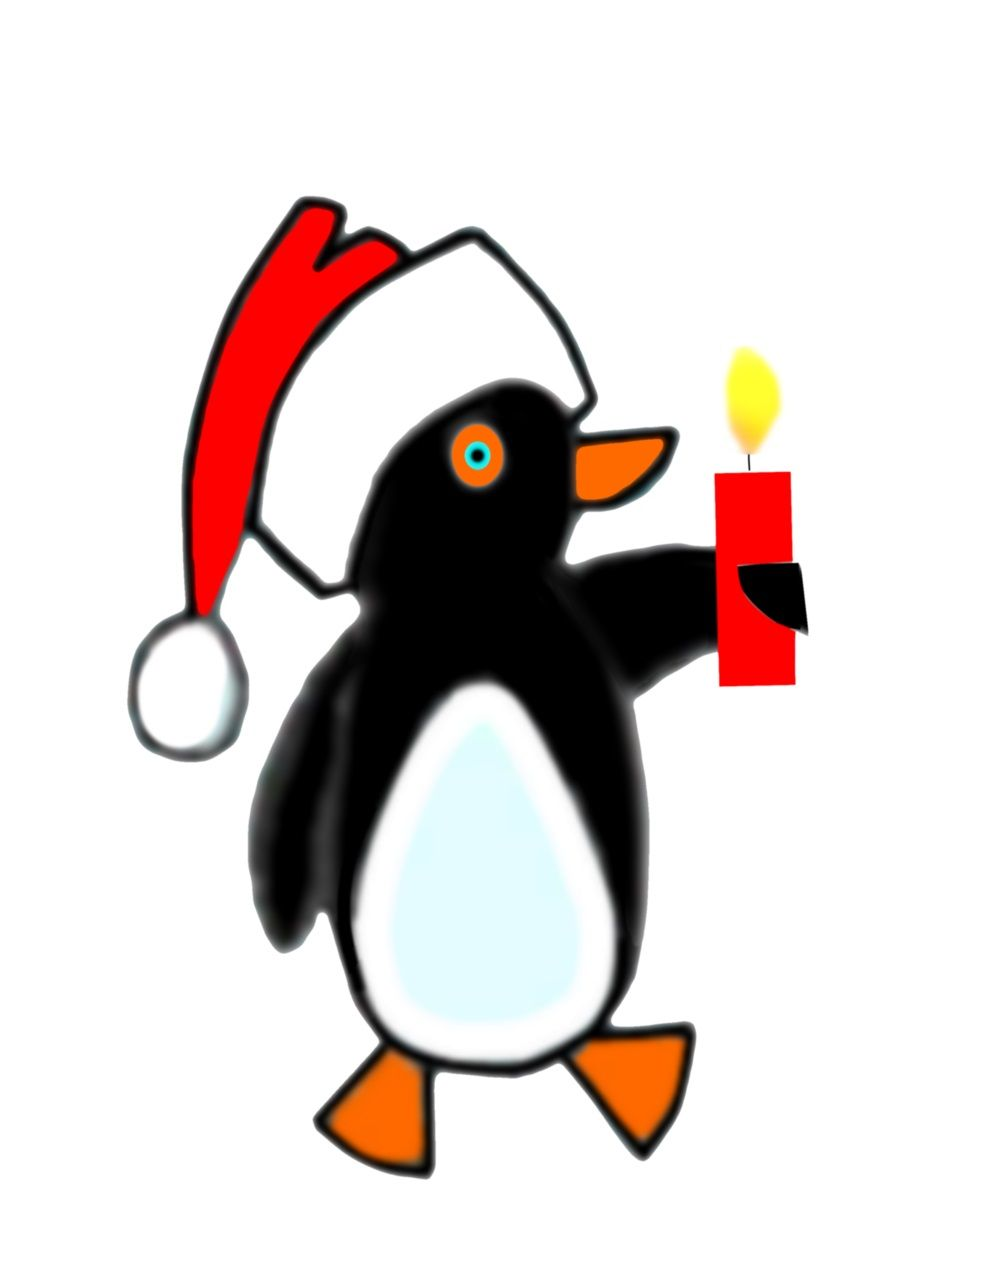 What Do Penguins And Dogs Have In Common - image 4 - student project